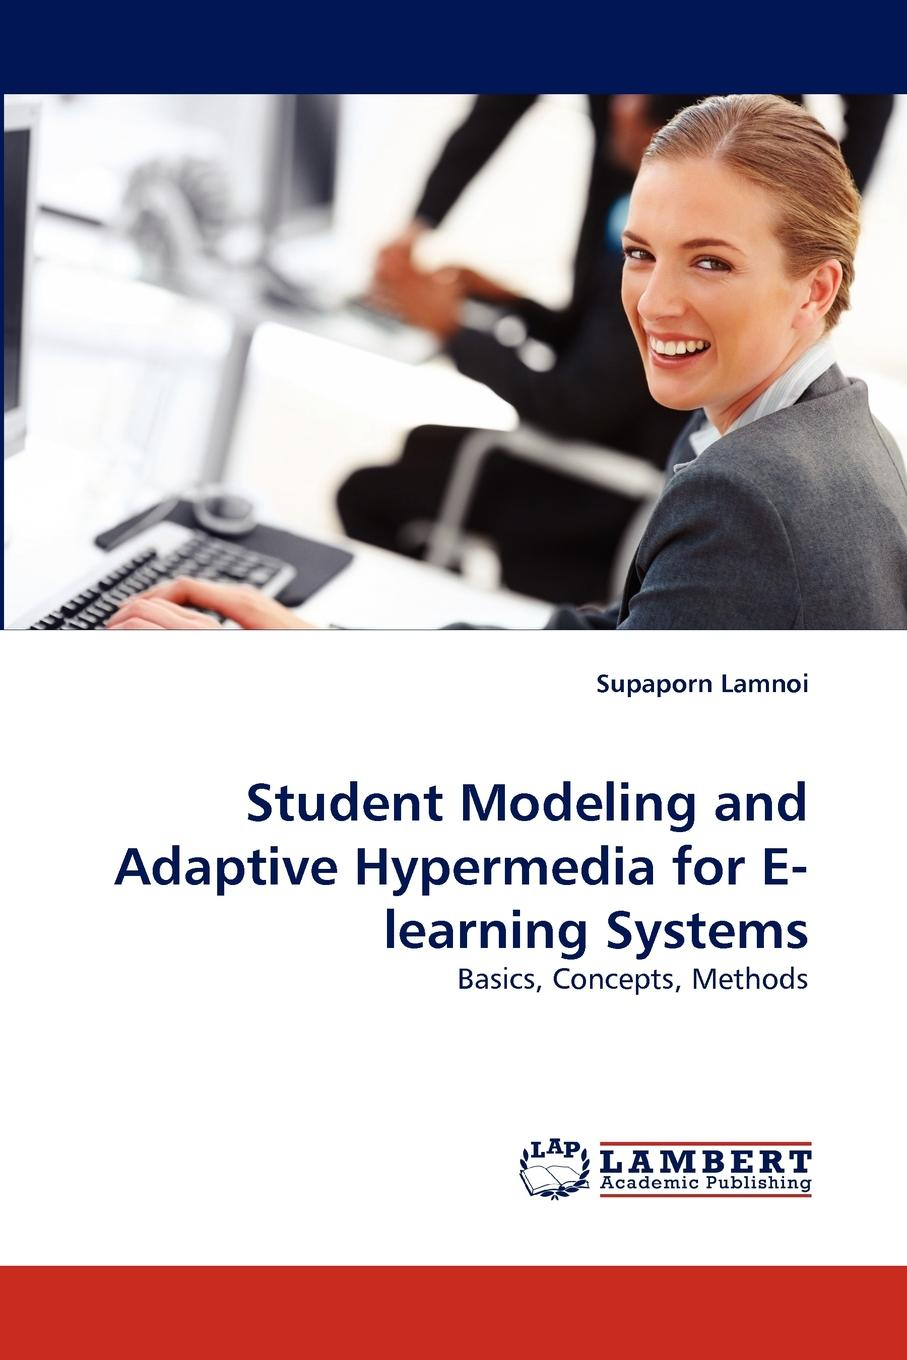 Supaporn Lamnoi Student Modeling and Adaptive Hypermedia for E-learning Systems